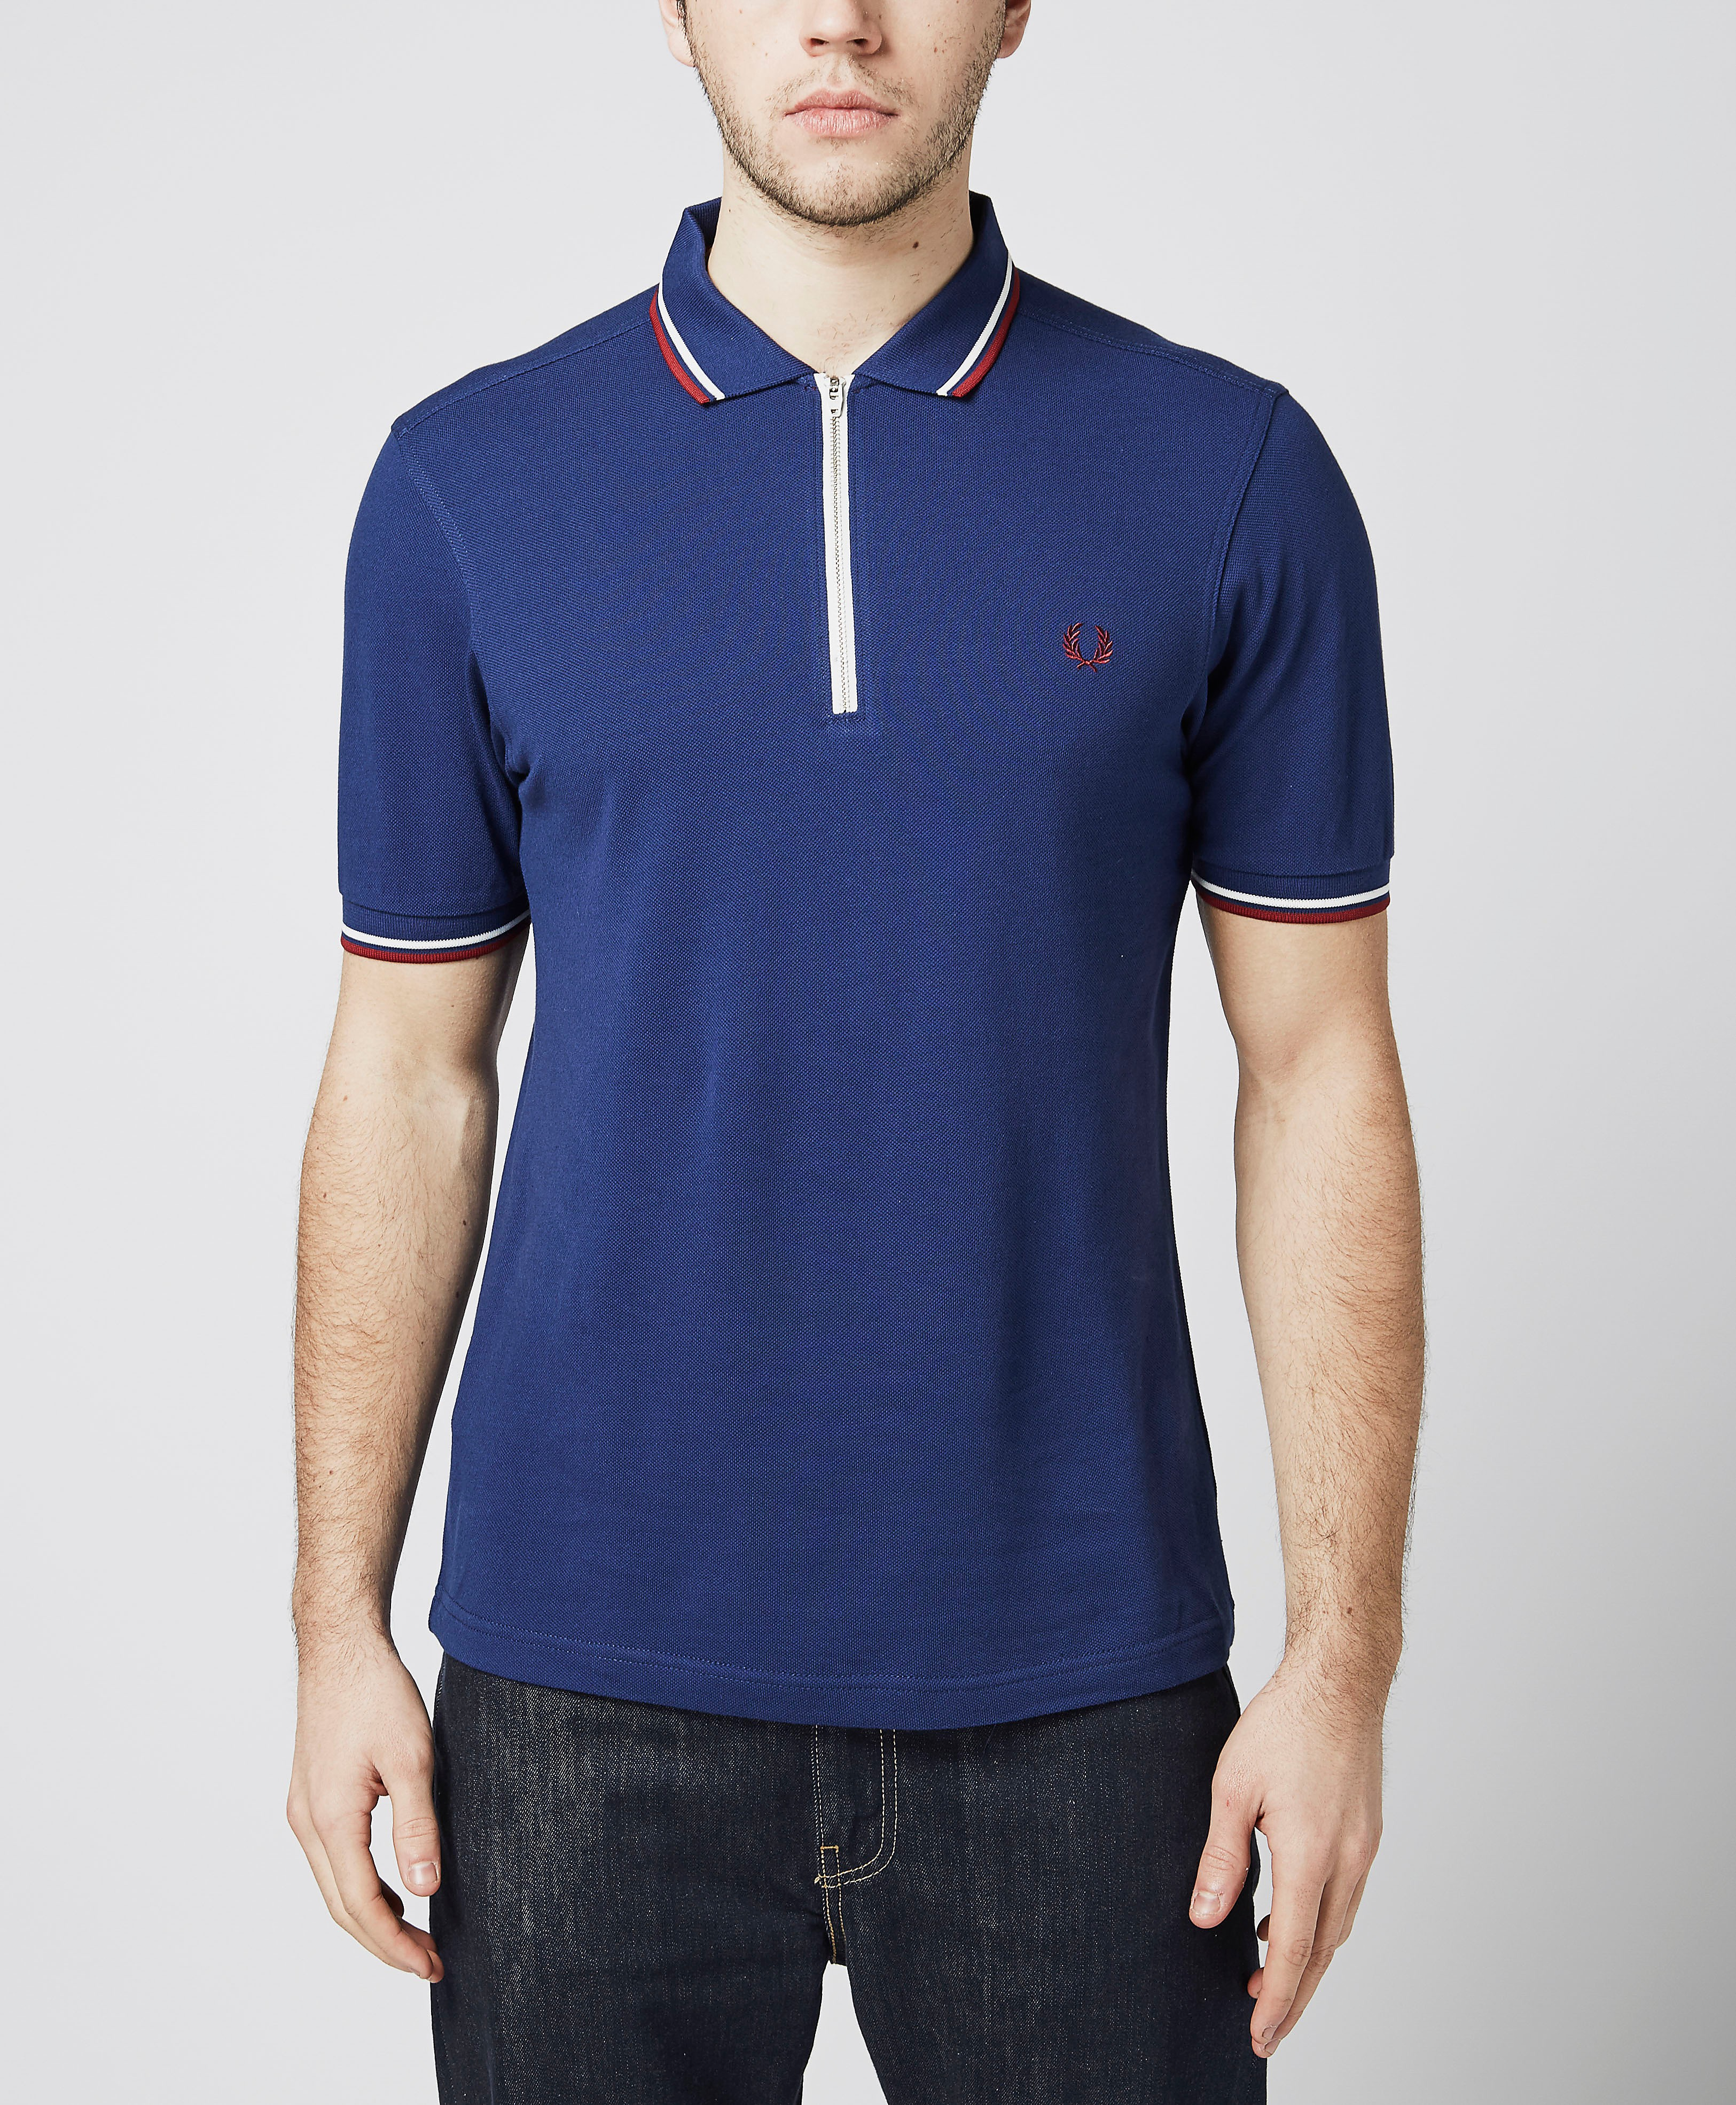 Fred Perry Zip Pique Twin Tipped Polo Shirt  Navy Navy